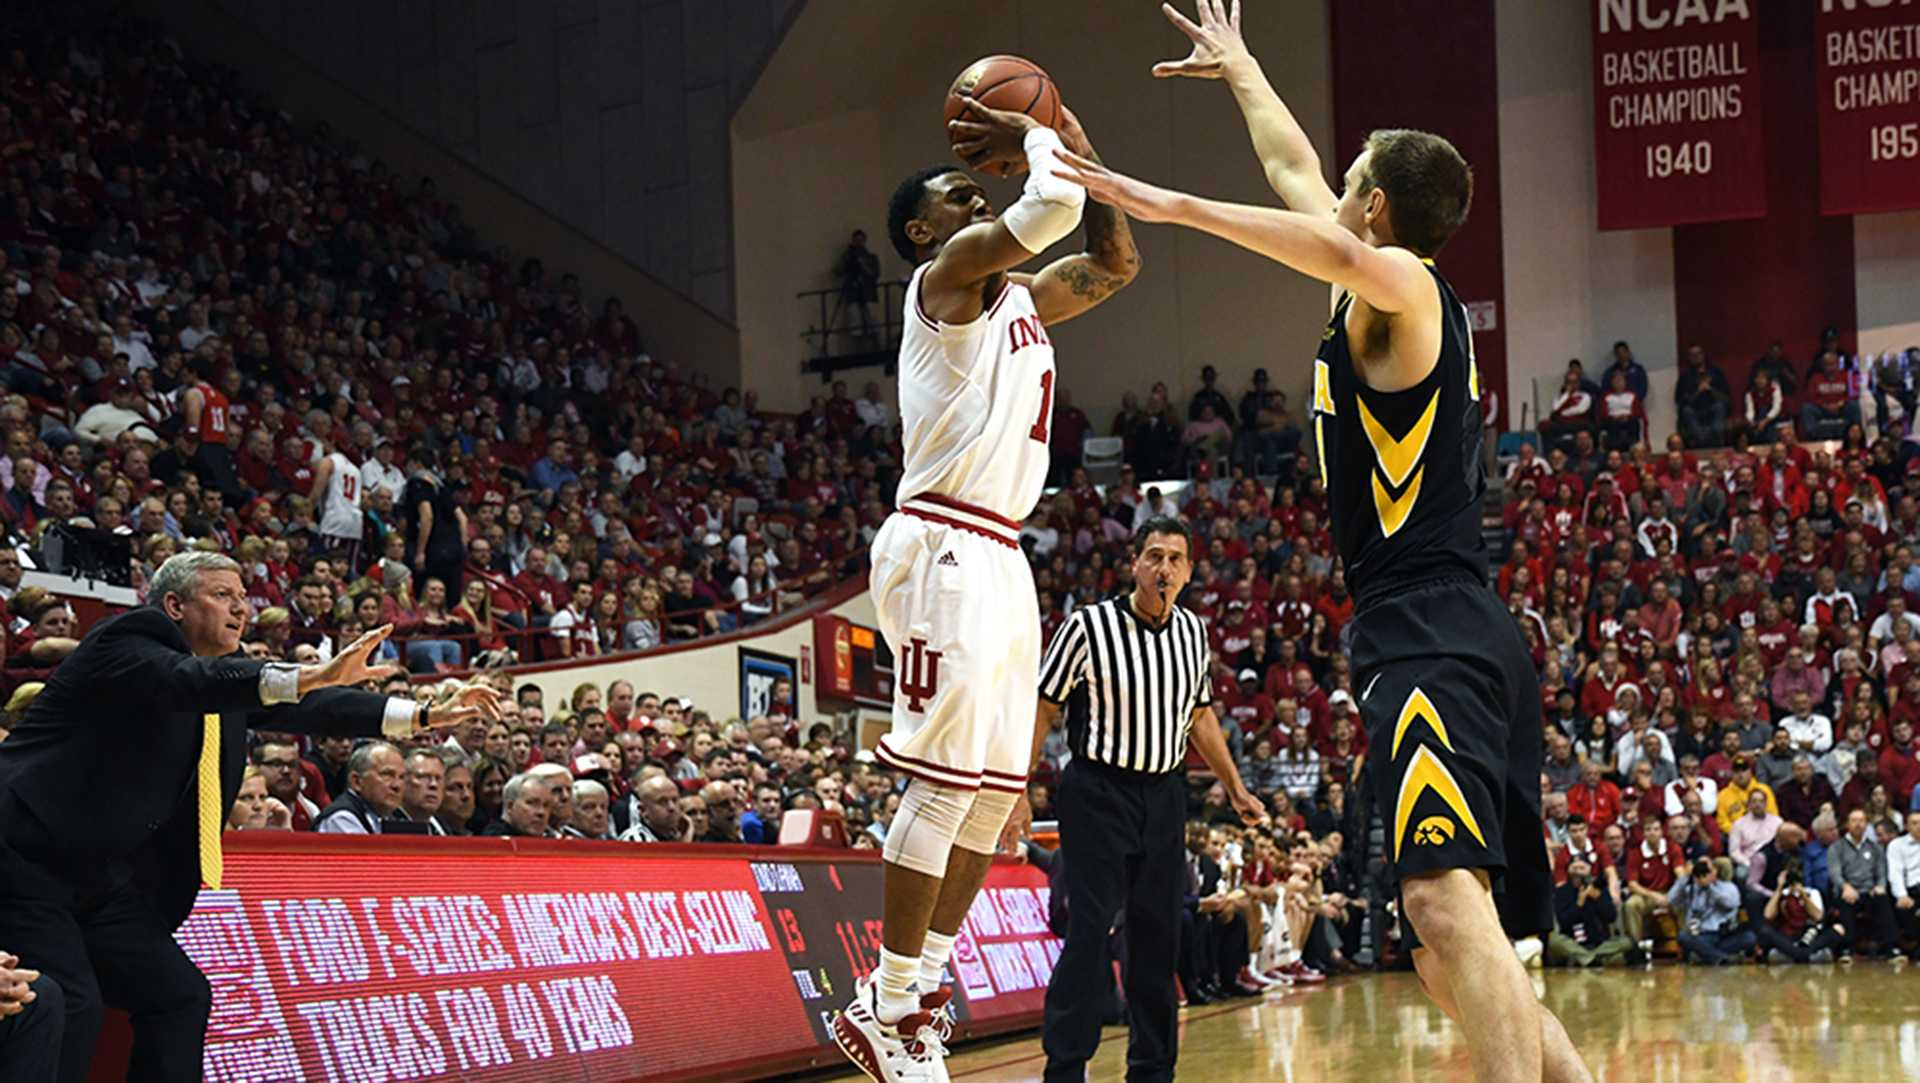 Sophomore guard Devonte Green takes a shot against Iowa Monday evening in Simon Skjodt Assembly Hall. Green had 12 points and four assists in IU's 77-64 win against Iowa. (Bobby Goddin/Indiana Daily Student)